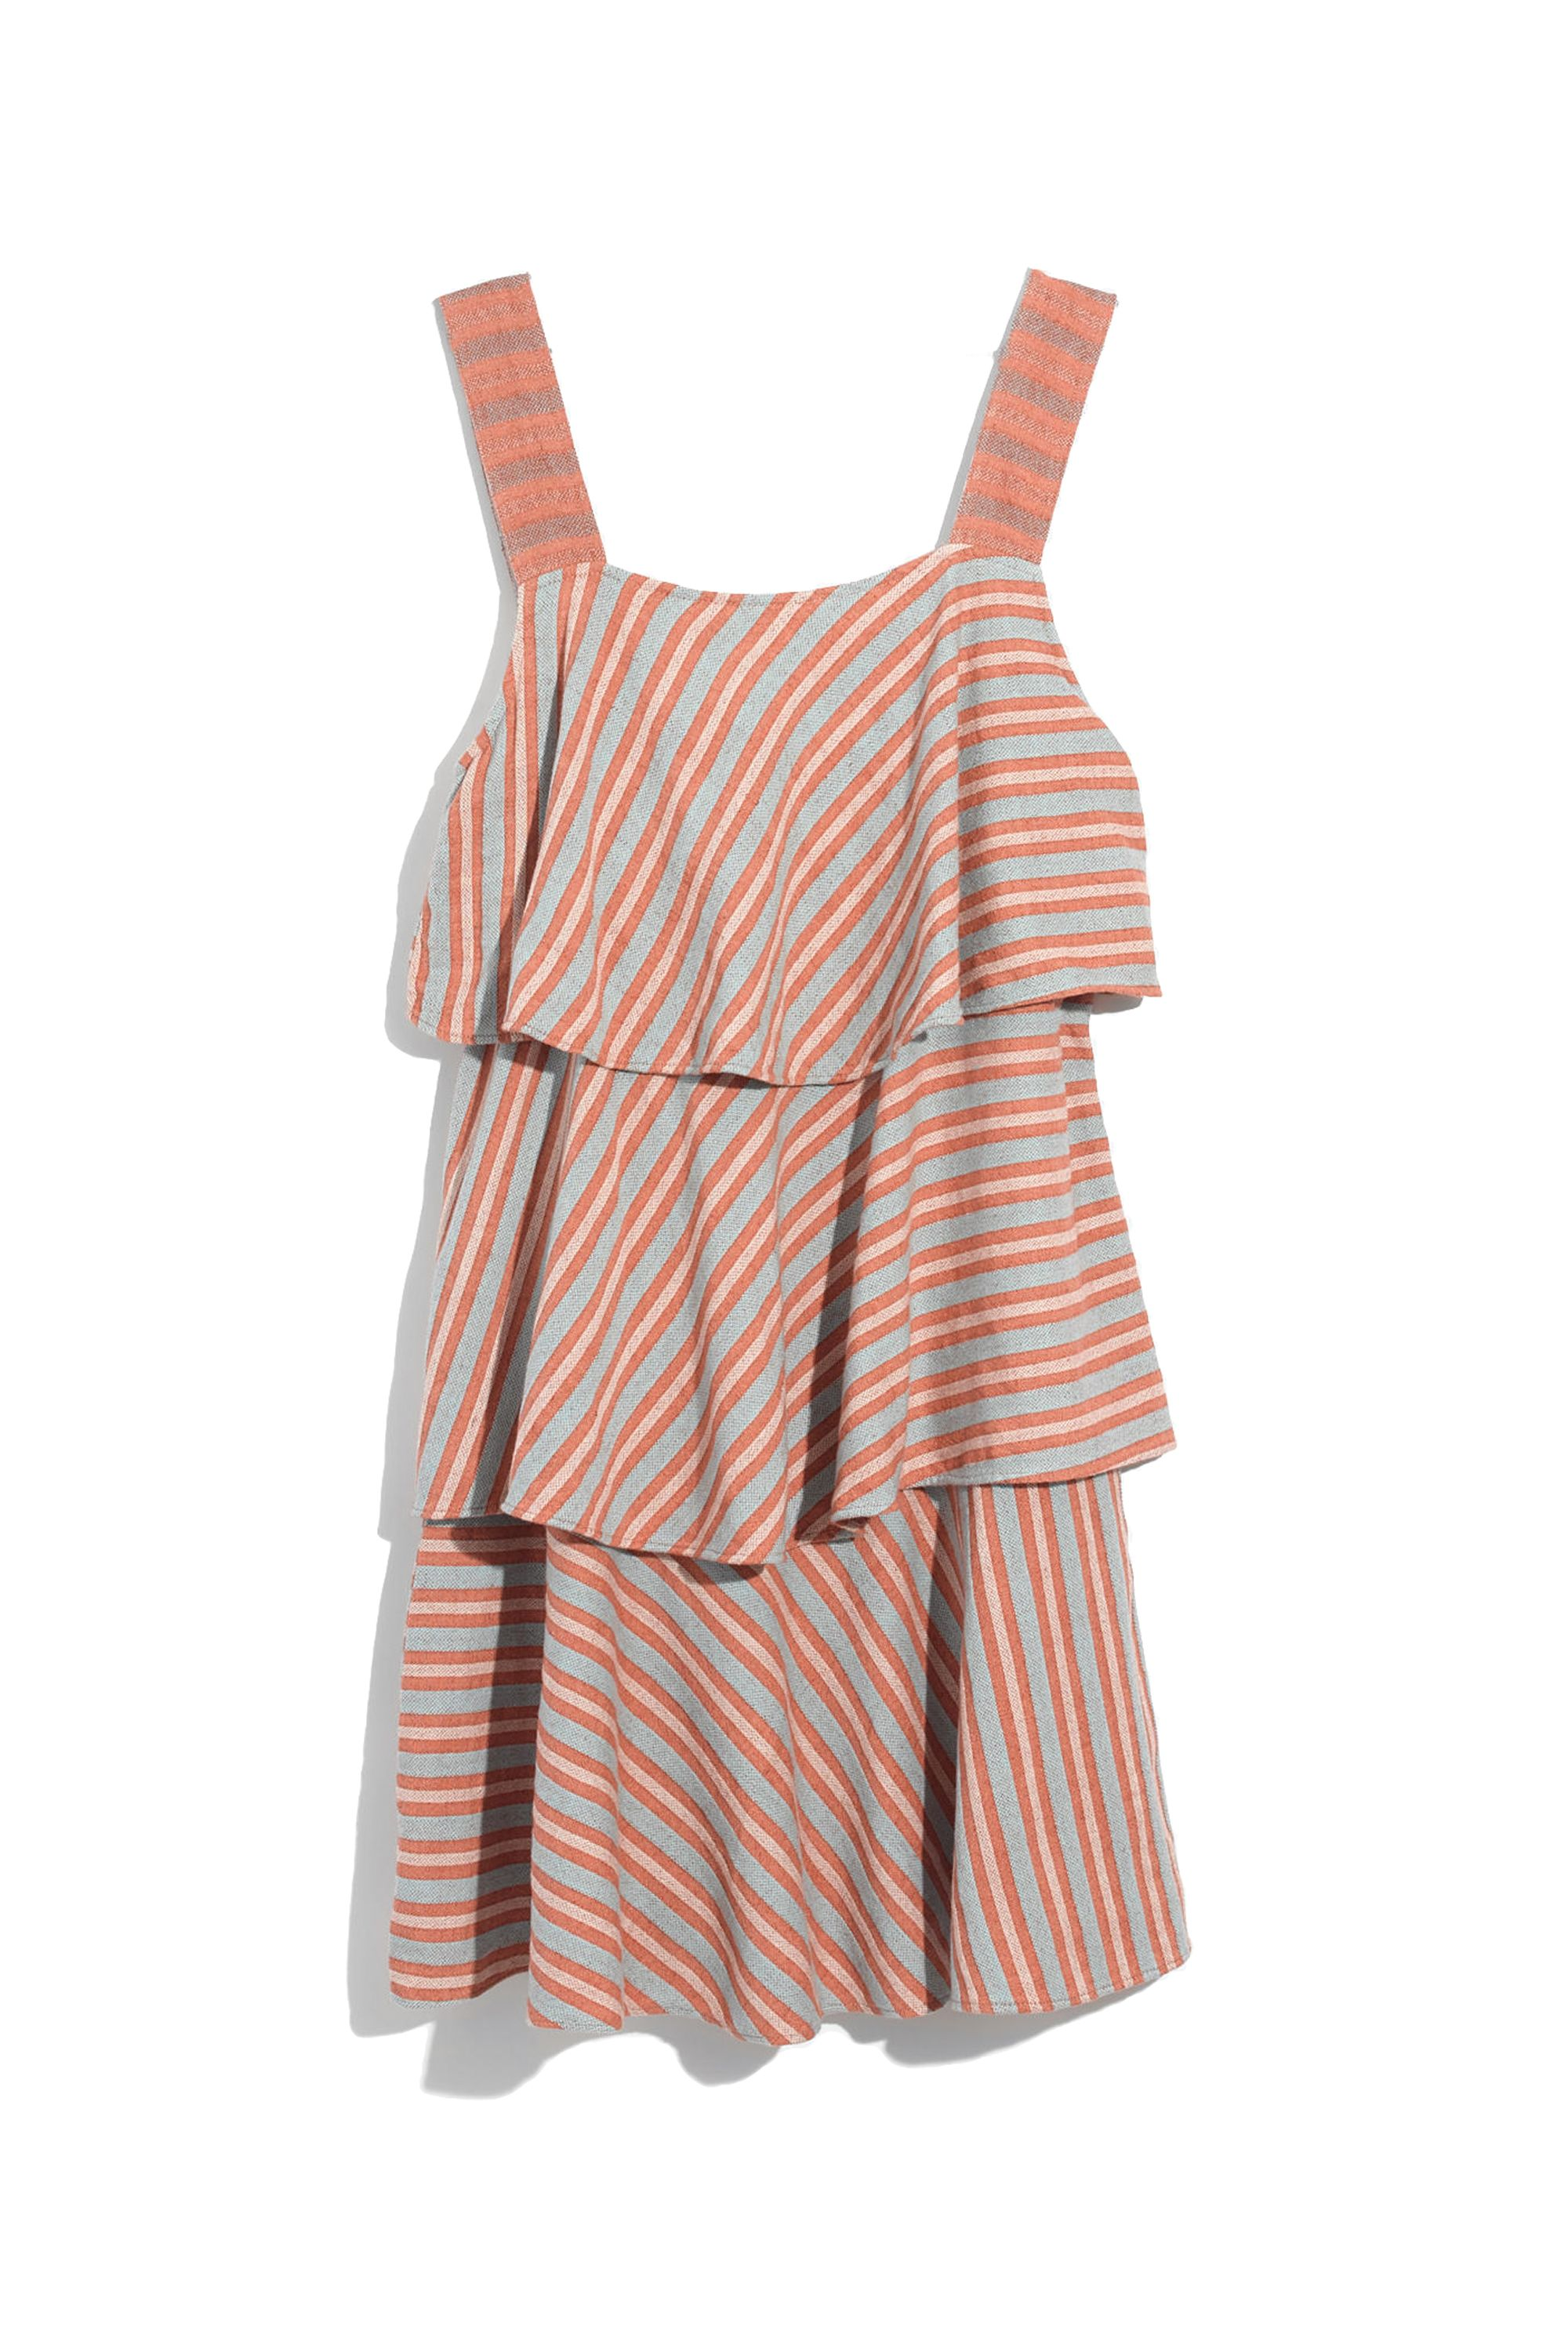 "<p>Three tiers of pushup-popsicle-colored fun. </p><p>Ace & Jig, $338, <a href=""https://www.madewell.com/madewell_category/DRESSES/casualdresses/PRDOVR~G4441/G4441.jsp"" target=""_blank"" data-tracking-id=""recirc-text-link"">madewell.com</a>.</p>"